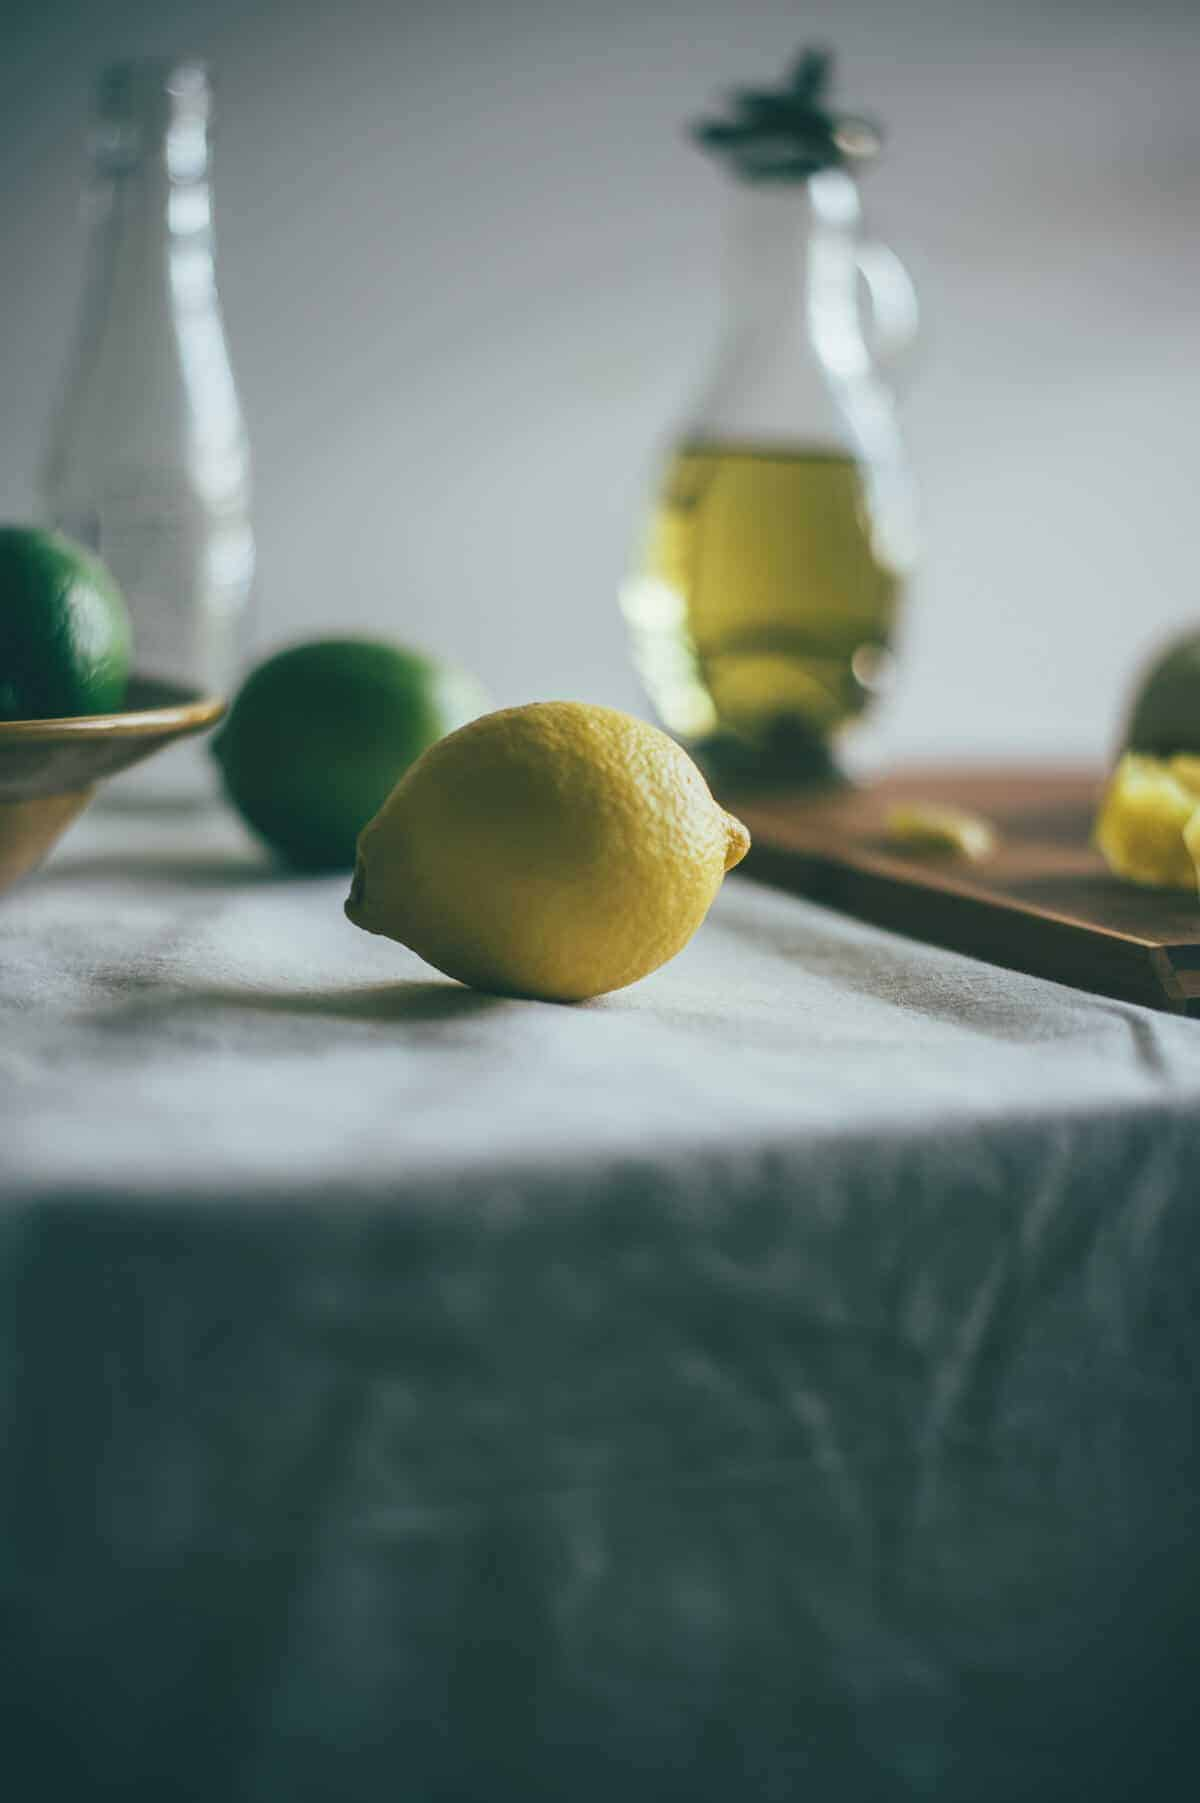 a whole lemon with limes on a table with a bottle of olive oil